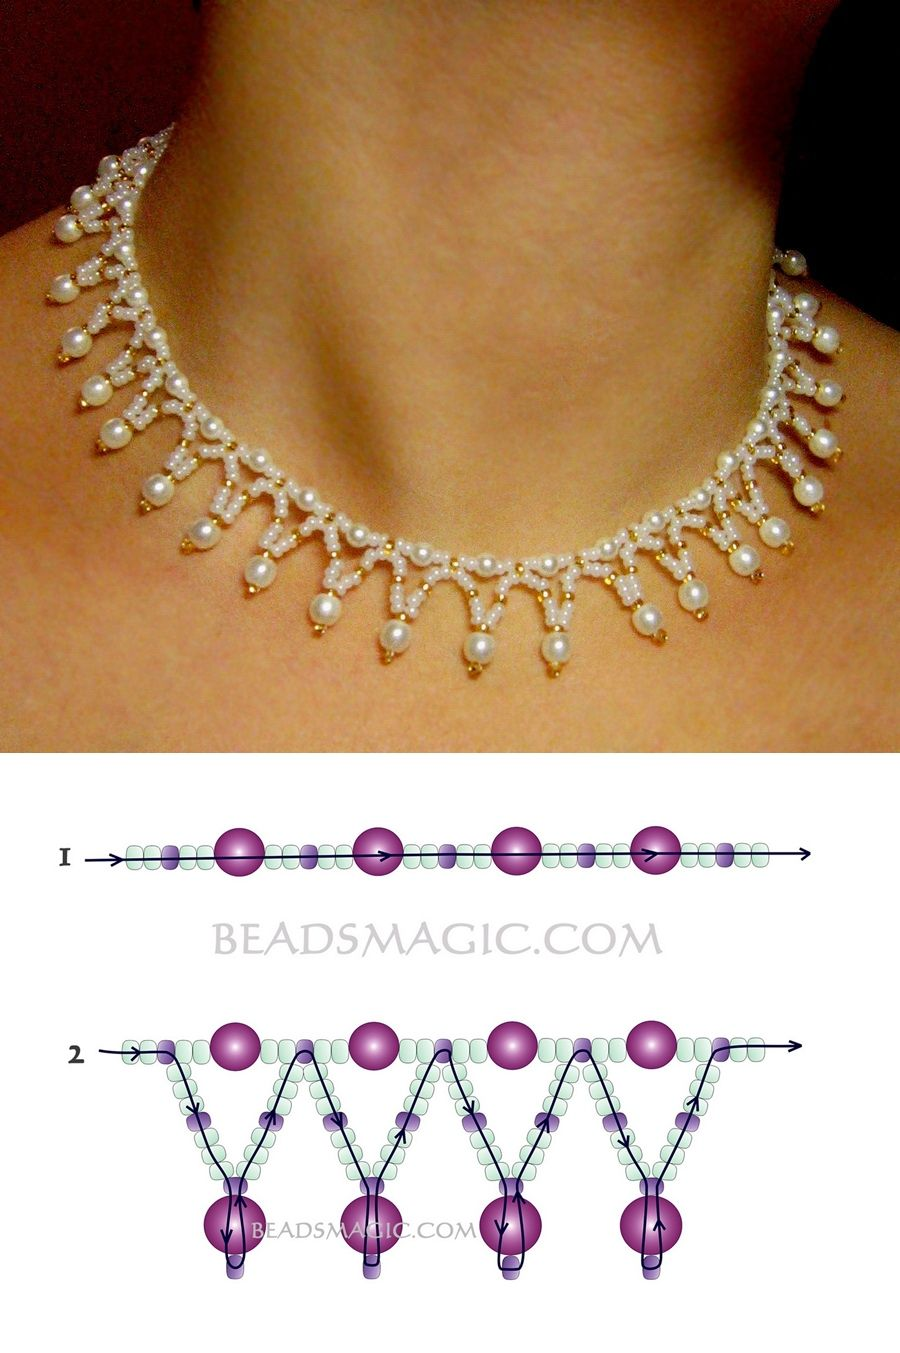 Free pattern for necklace tenderness seed beads 110 pearl beads 4 free pattern for necklace tenderness seed beads 110 pearl beads 4 mm pearl beads bankloansurffo Image collections